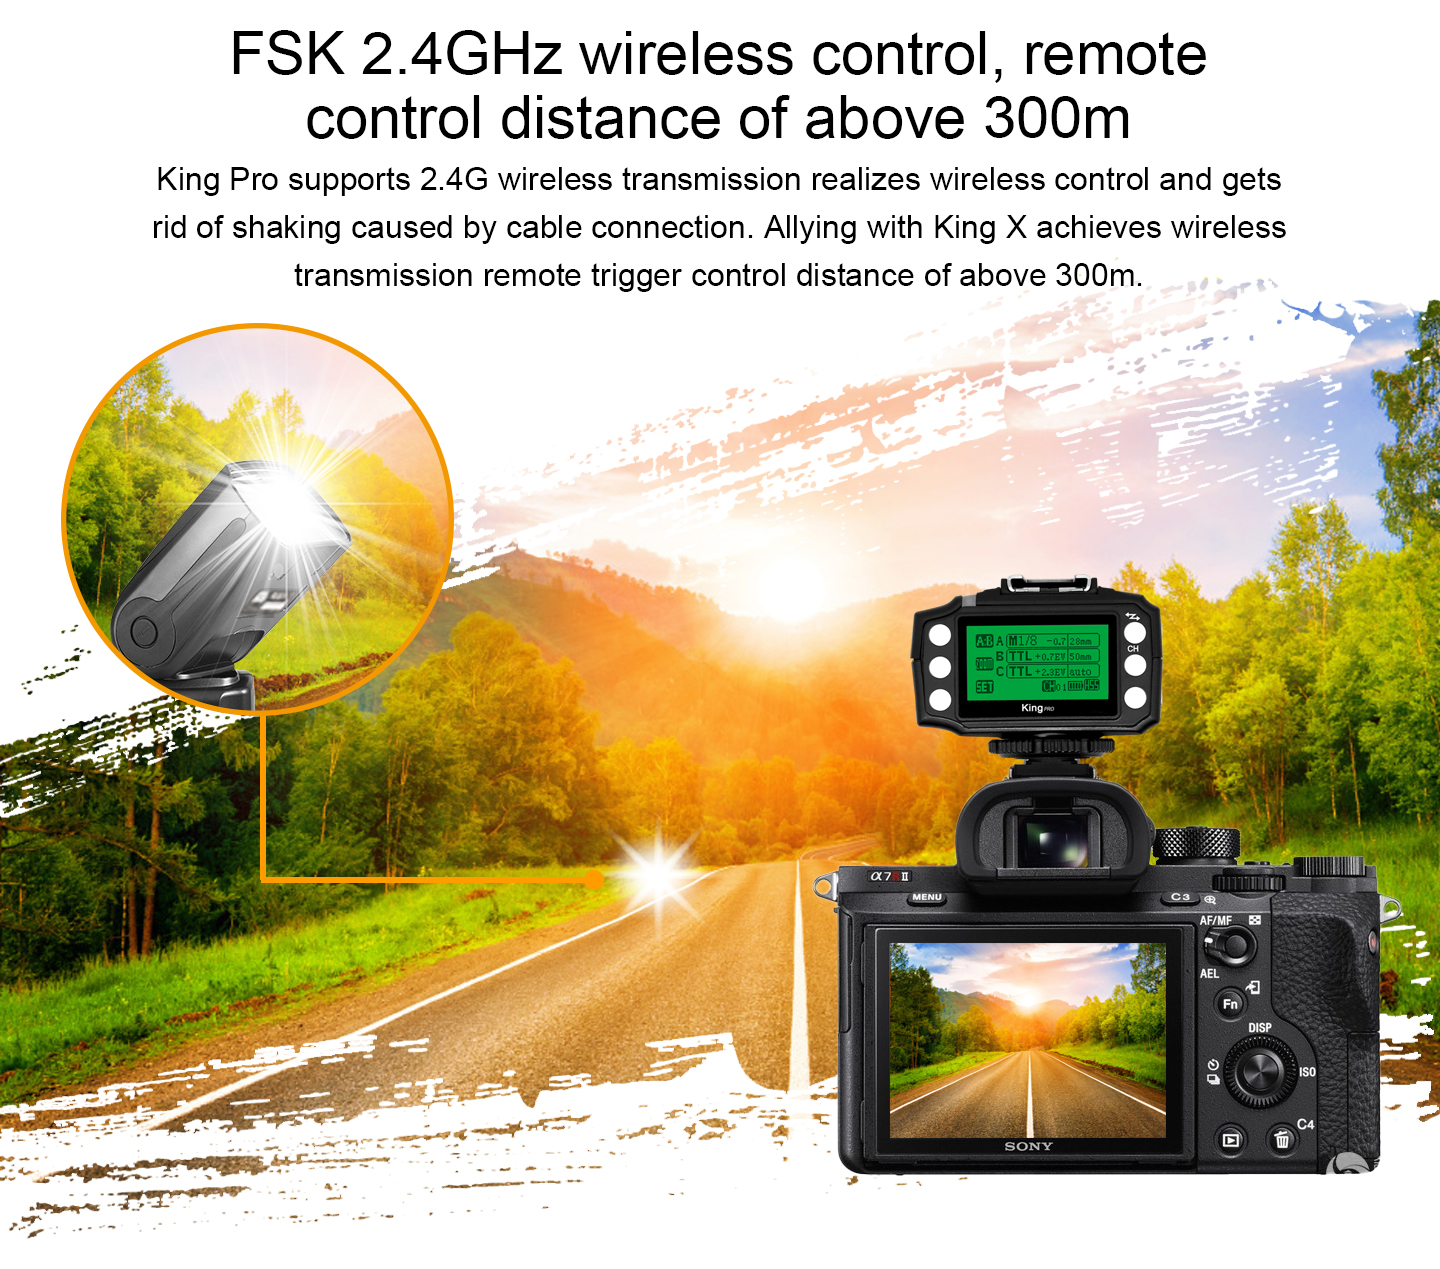 FSK 2.4GHz wireless control, remote control distance of above 300m